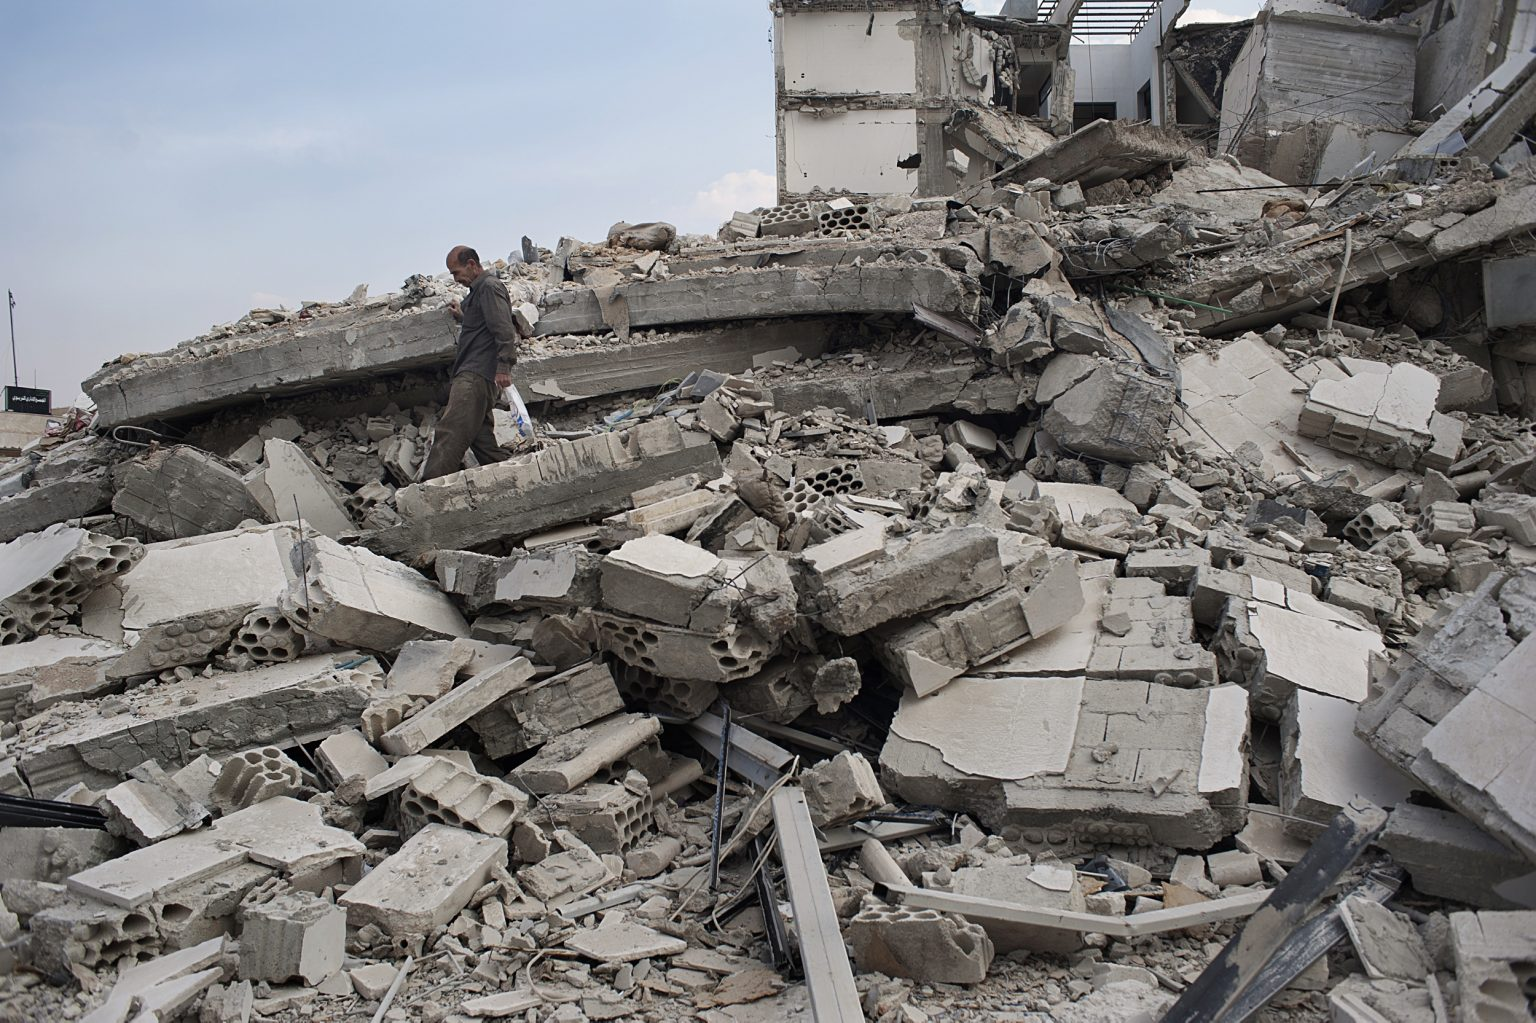 Syria, Al Quasyr - A destroyd building in the centre of the city after the bombing from the army of the regime of Bashar Al Assad. Ph.Giulio Piscitelli